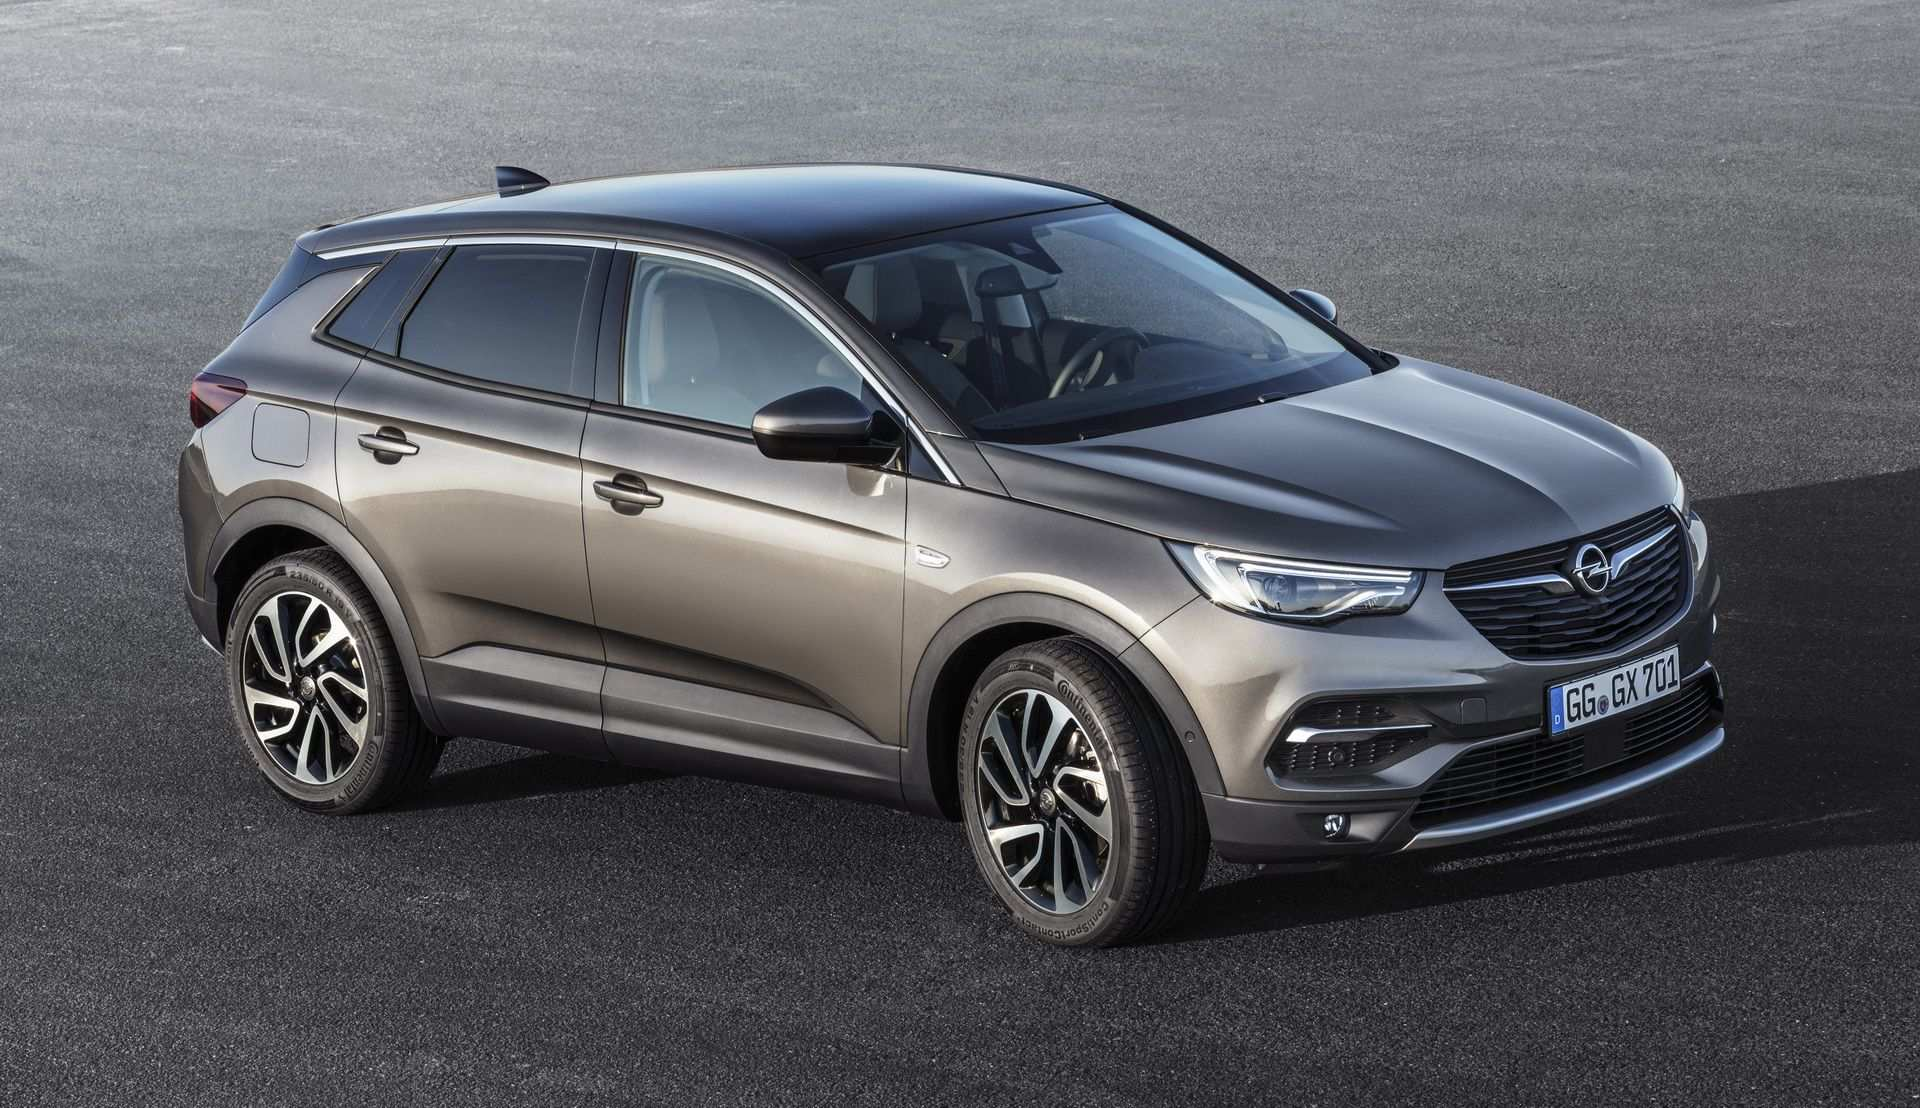 39 The Opel Grandland X Hybrid 2020 Redesign And Concept